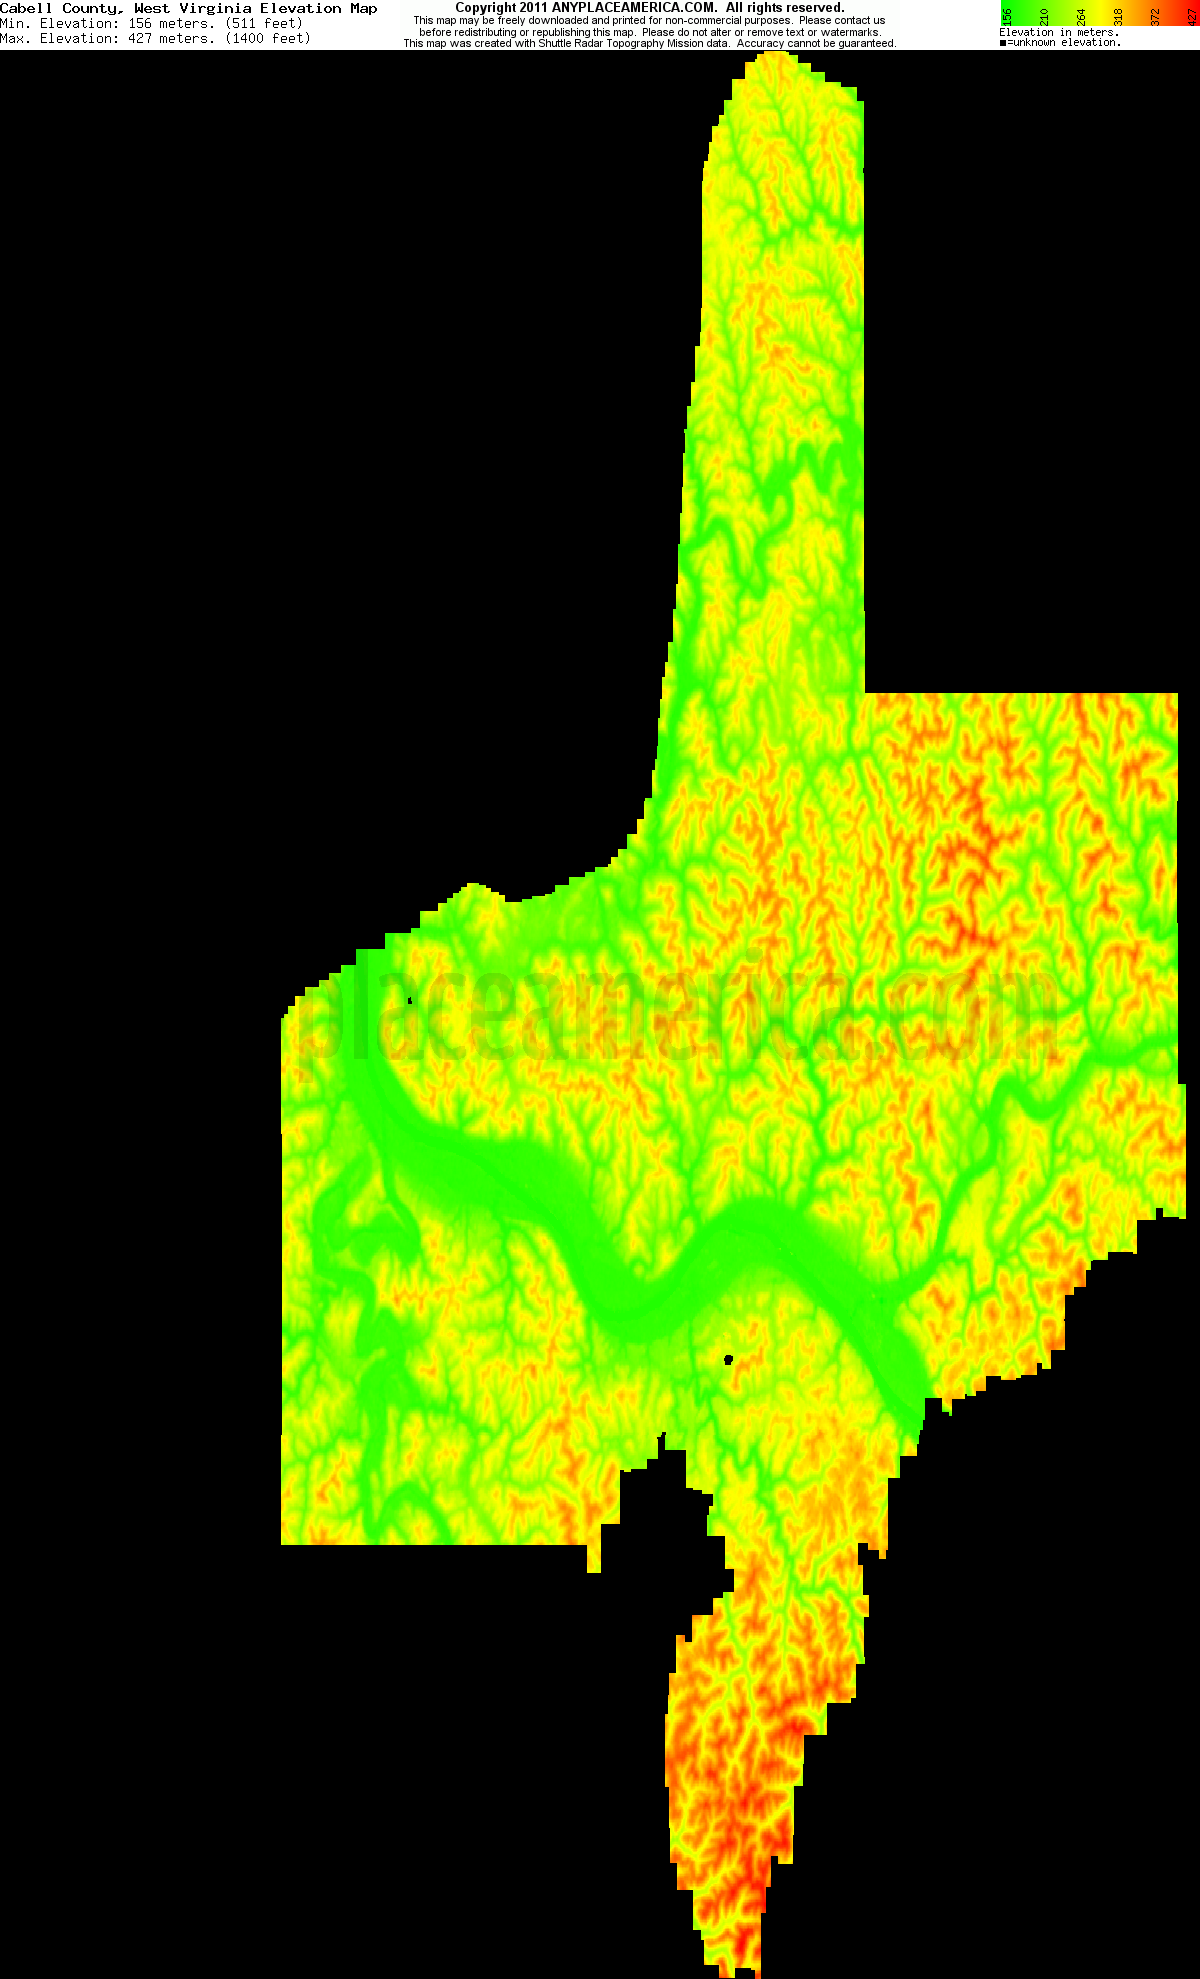 Download Cabell County Elevation Map